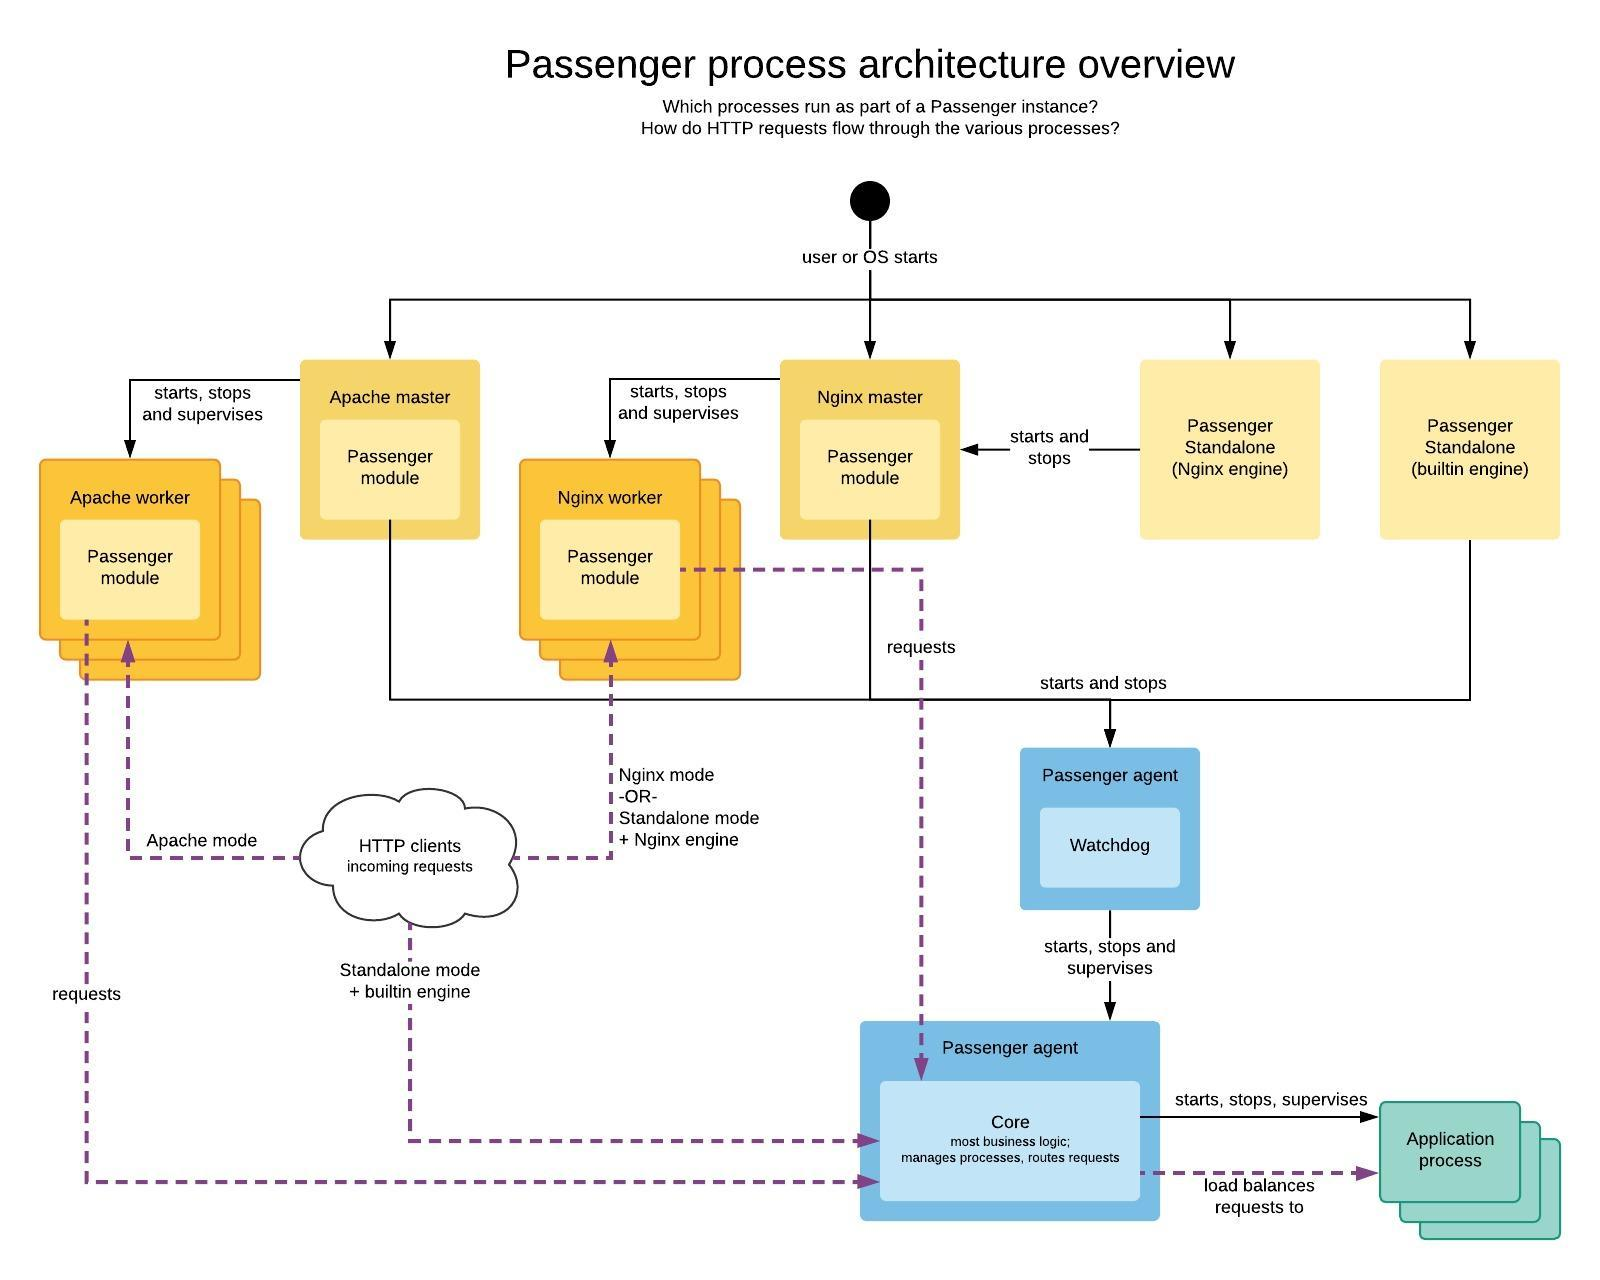 Passenger-architecture---Process-architecture-overview